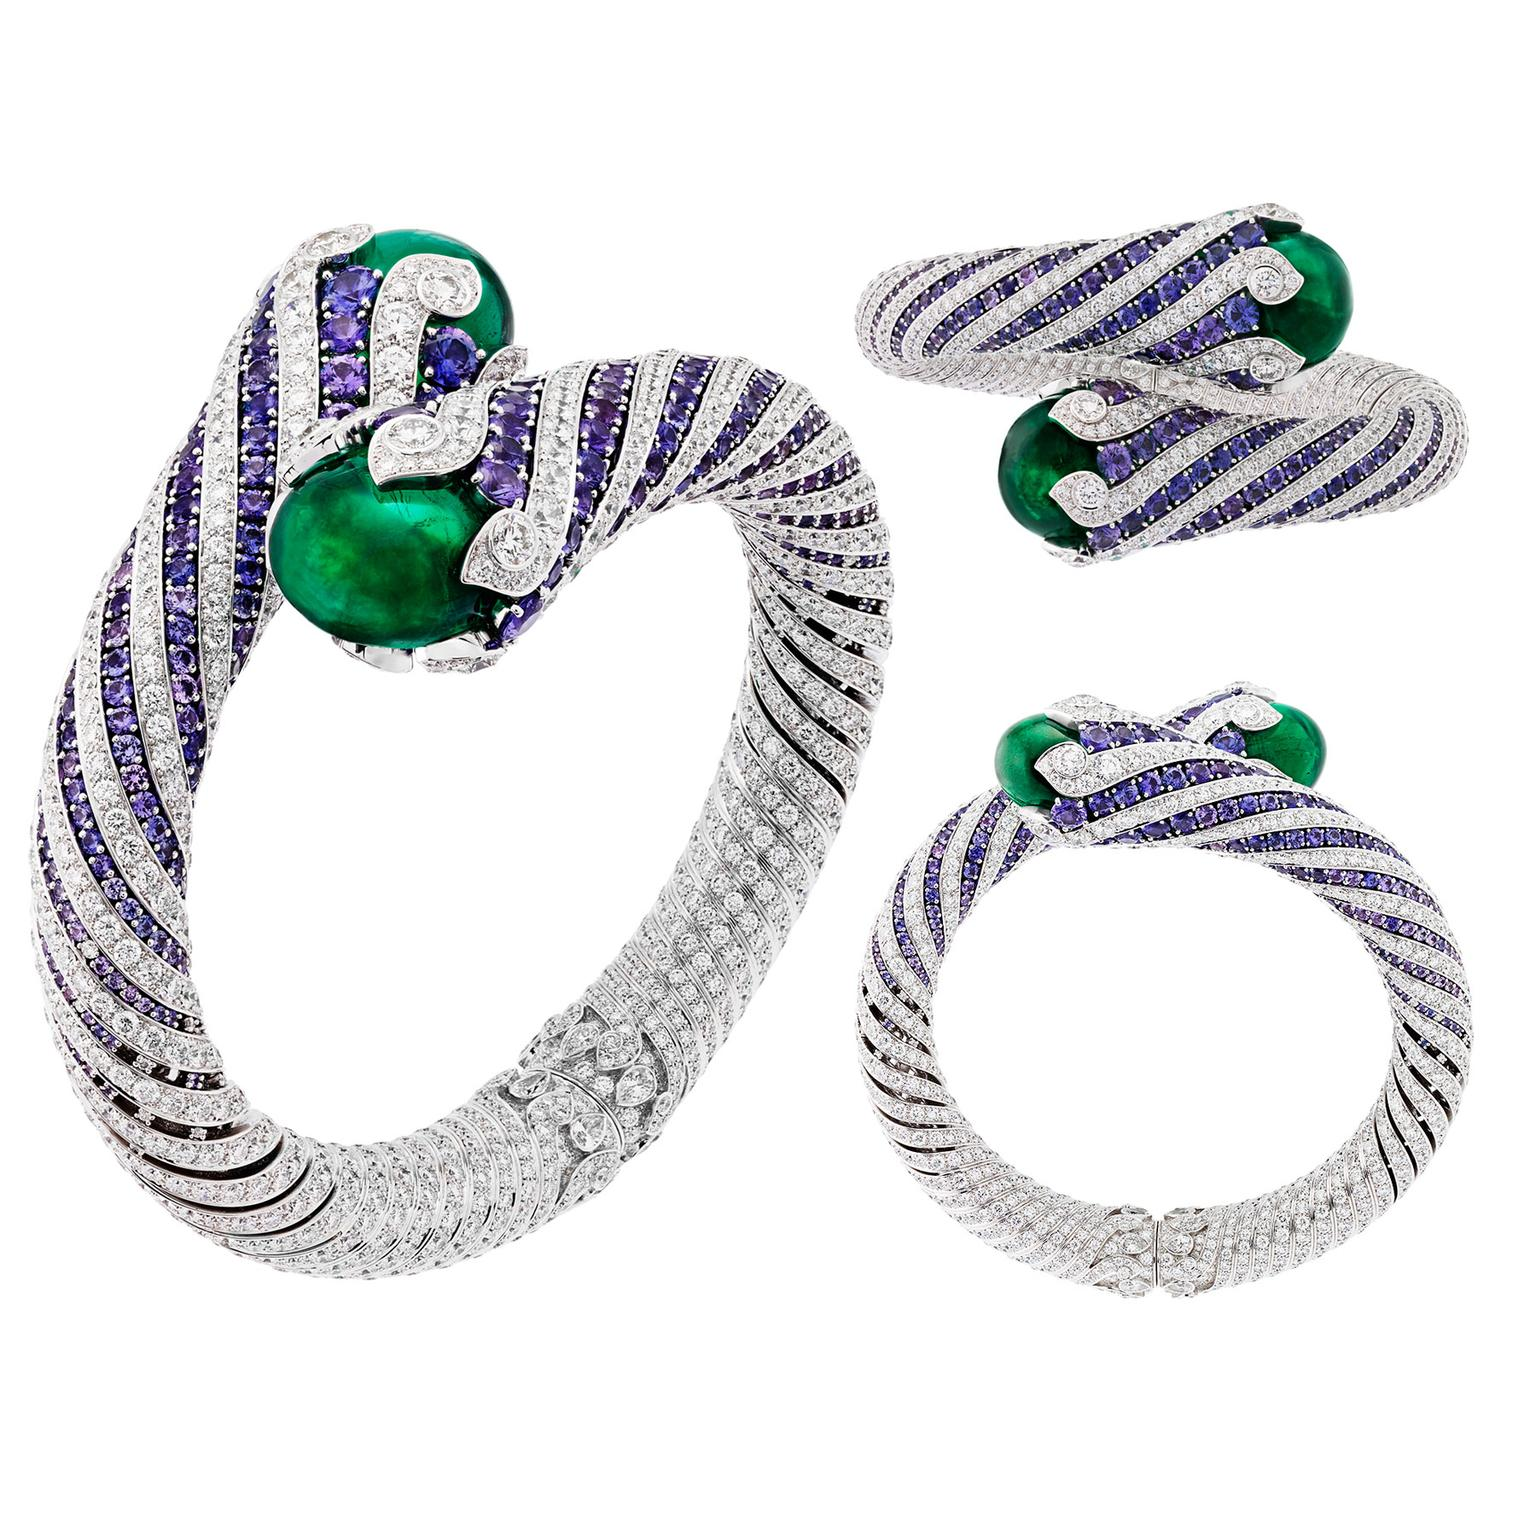 Van Cleef & Arpels Twist Émeraude violet sapphire and emerald high jewellery bracelet